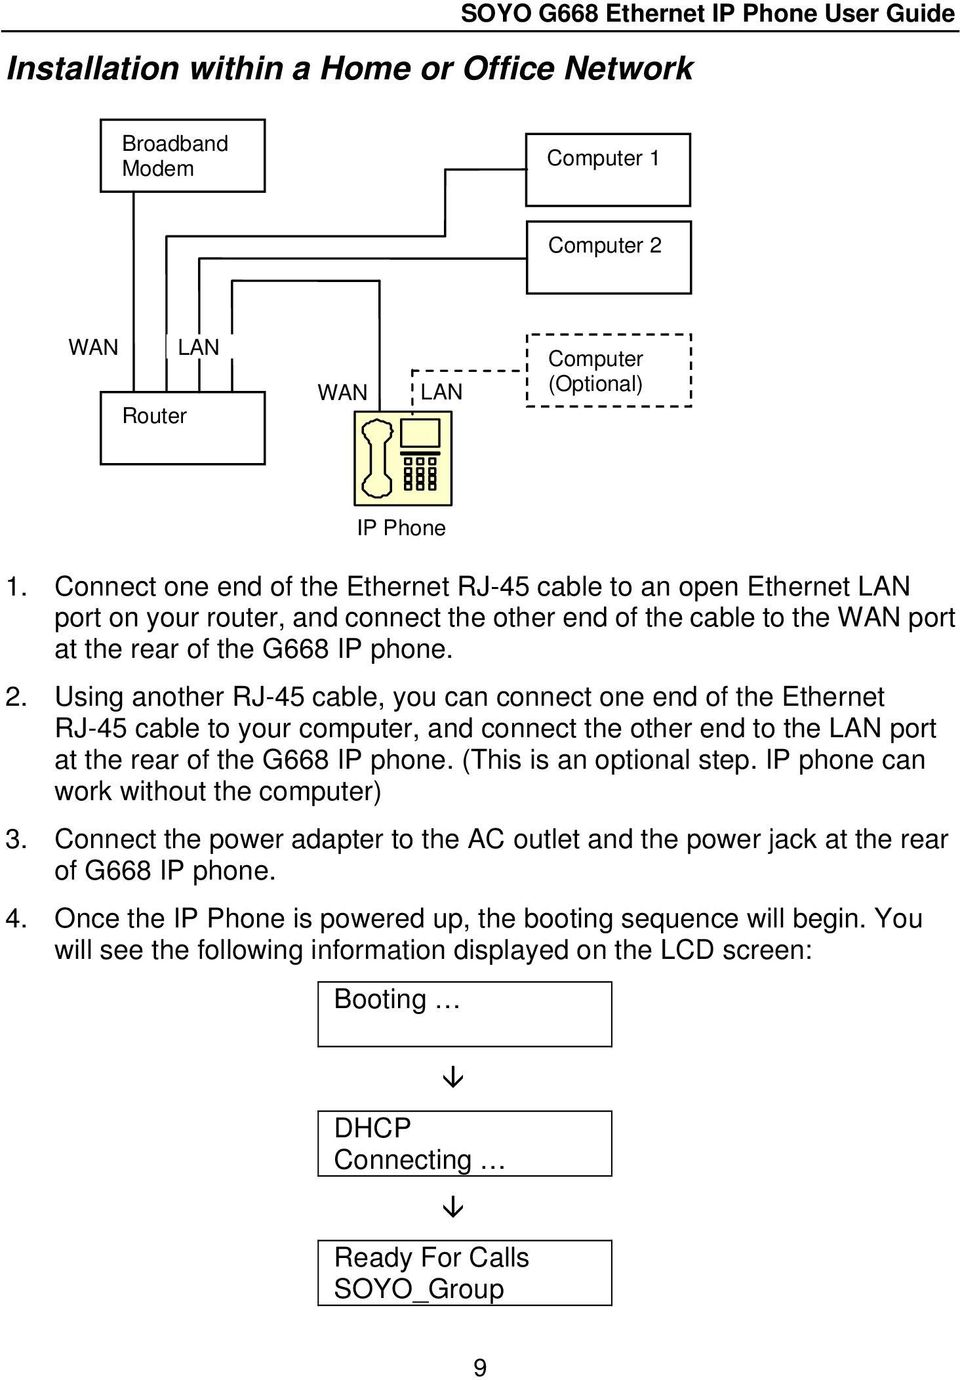 Soyo G668 Voip Ip Phone User Manual Pdf Pbx Wiring Diagram Using Another Rj 45 Cable You Can Connect One End Of The Ethernet